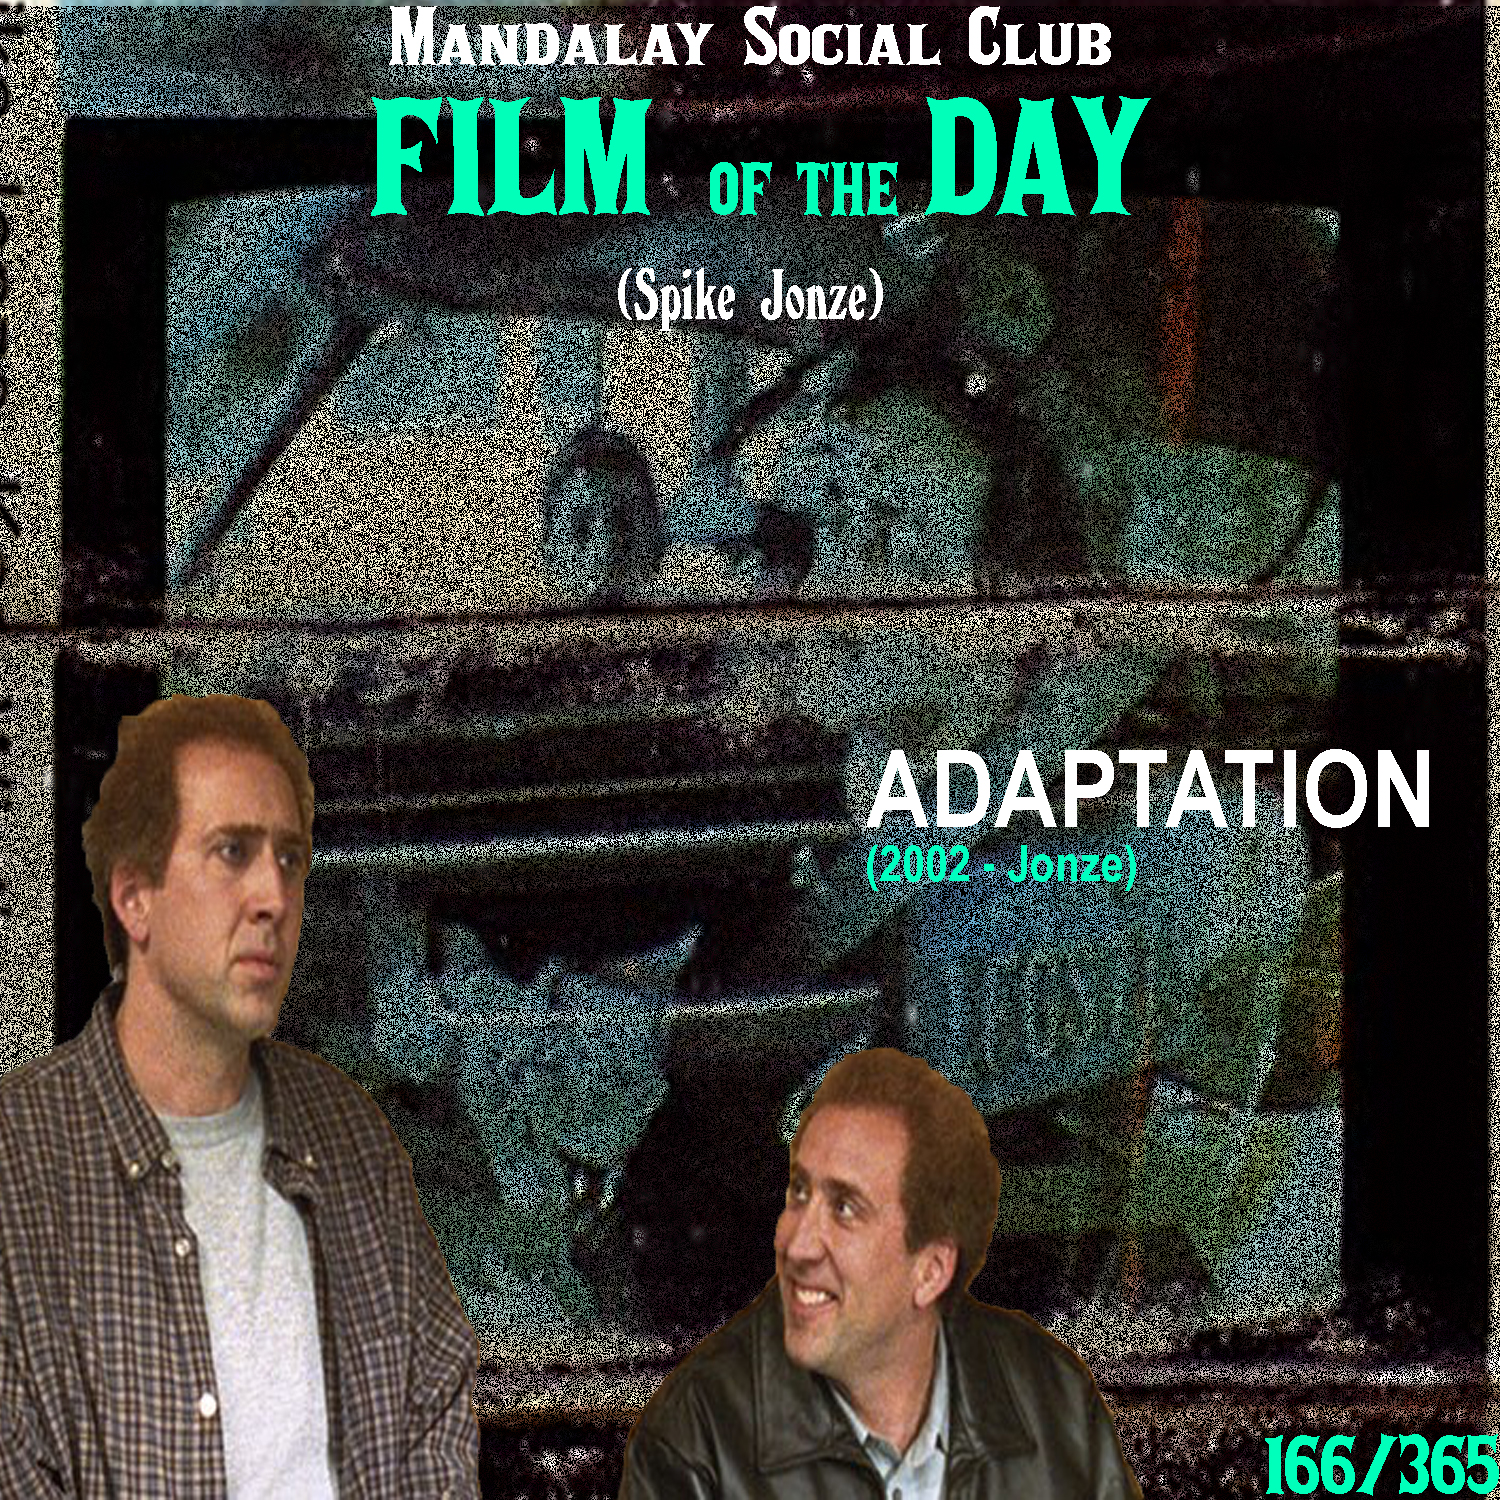 ADAPTATION     (dir. Spike Jonze)   Spike Jonze's second film was also written by Charlie Kaufman and their undeniable chemistry is even more evident the second time around!  Adaptation is even more matter than being John Malkovich was. This time around Charlie Kaufman rights himself into his own script. Nicolas Cage plays Charlie Kaufman as well as his fictionalized twin Donald. The two of them are both screenwriters but Charlie, the more introspective of the two, has a great deal of trouble adapting a book that he's been assigned to write the screenplay for. The film opens with behind the scenes footage from the filming of Being John Malkovich and shows Kaufman (Cage) on set standing timidly off to the side. After going home after feeling unimportant on the set, he finds himself in an intense writer's block. At his wit's end, he decides to write himself into his own script, changing the entire concept of what the film was to be about.  In an additional plot line we see Meryl Streep as Susan Orlean, the author of the book about flowers Kaufman was adapting, as she goes through her journey of writing the book that was initially intended to be the story line of the film.  The first two acts of this film are very much like a documentary. Not in it's visuals, but with how the story's structured. Everything up to the wacky ending in the Florida Everglades is just a re-enactment of what Charlie Kaufman actually did when assigned to adapt a book about flowers into a screenplay. Spike Jonze effortlessly plays with our perception of time and location as he perfectly entwines the main story with Nicolas Cage and the second story with Meryl Streep and into one satisfying vision.    5/5     WATCH: Putlocker (FREE), iTunes (RENT)